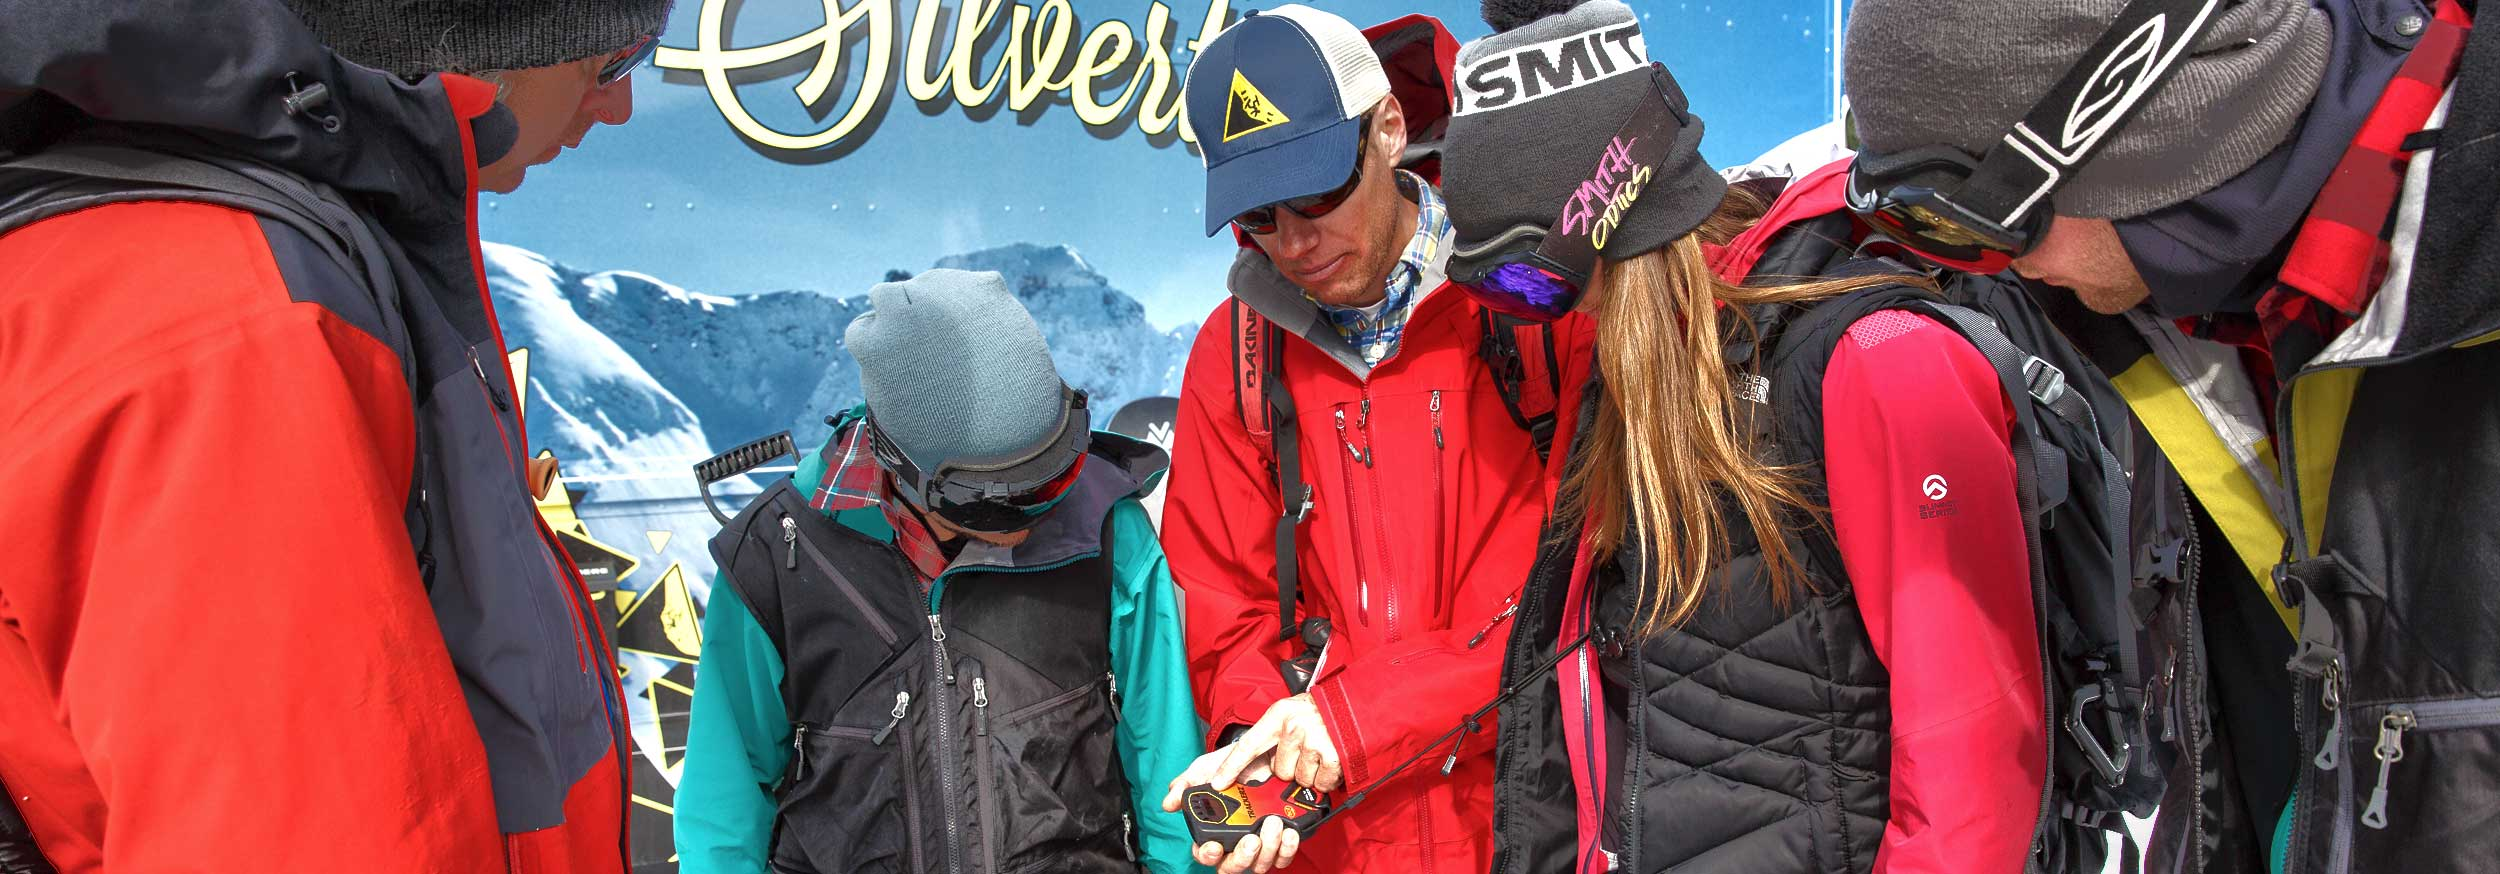 Four clients watch a guide demonstrating how to use an avalanche transceiver at Silverton Mountain Colorado